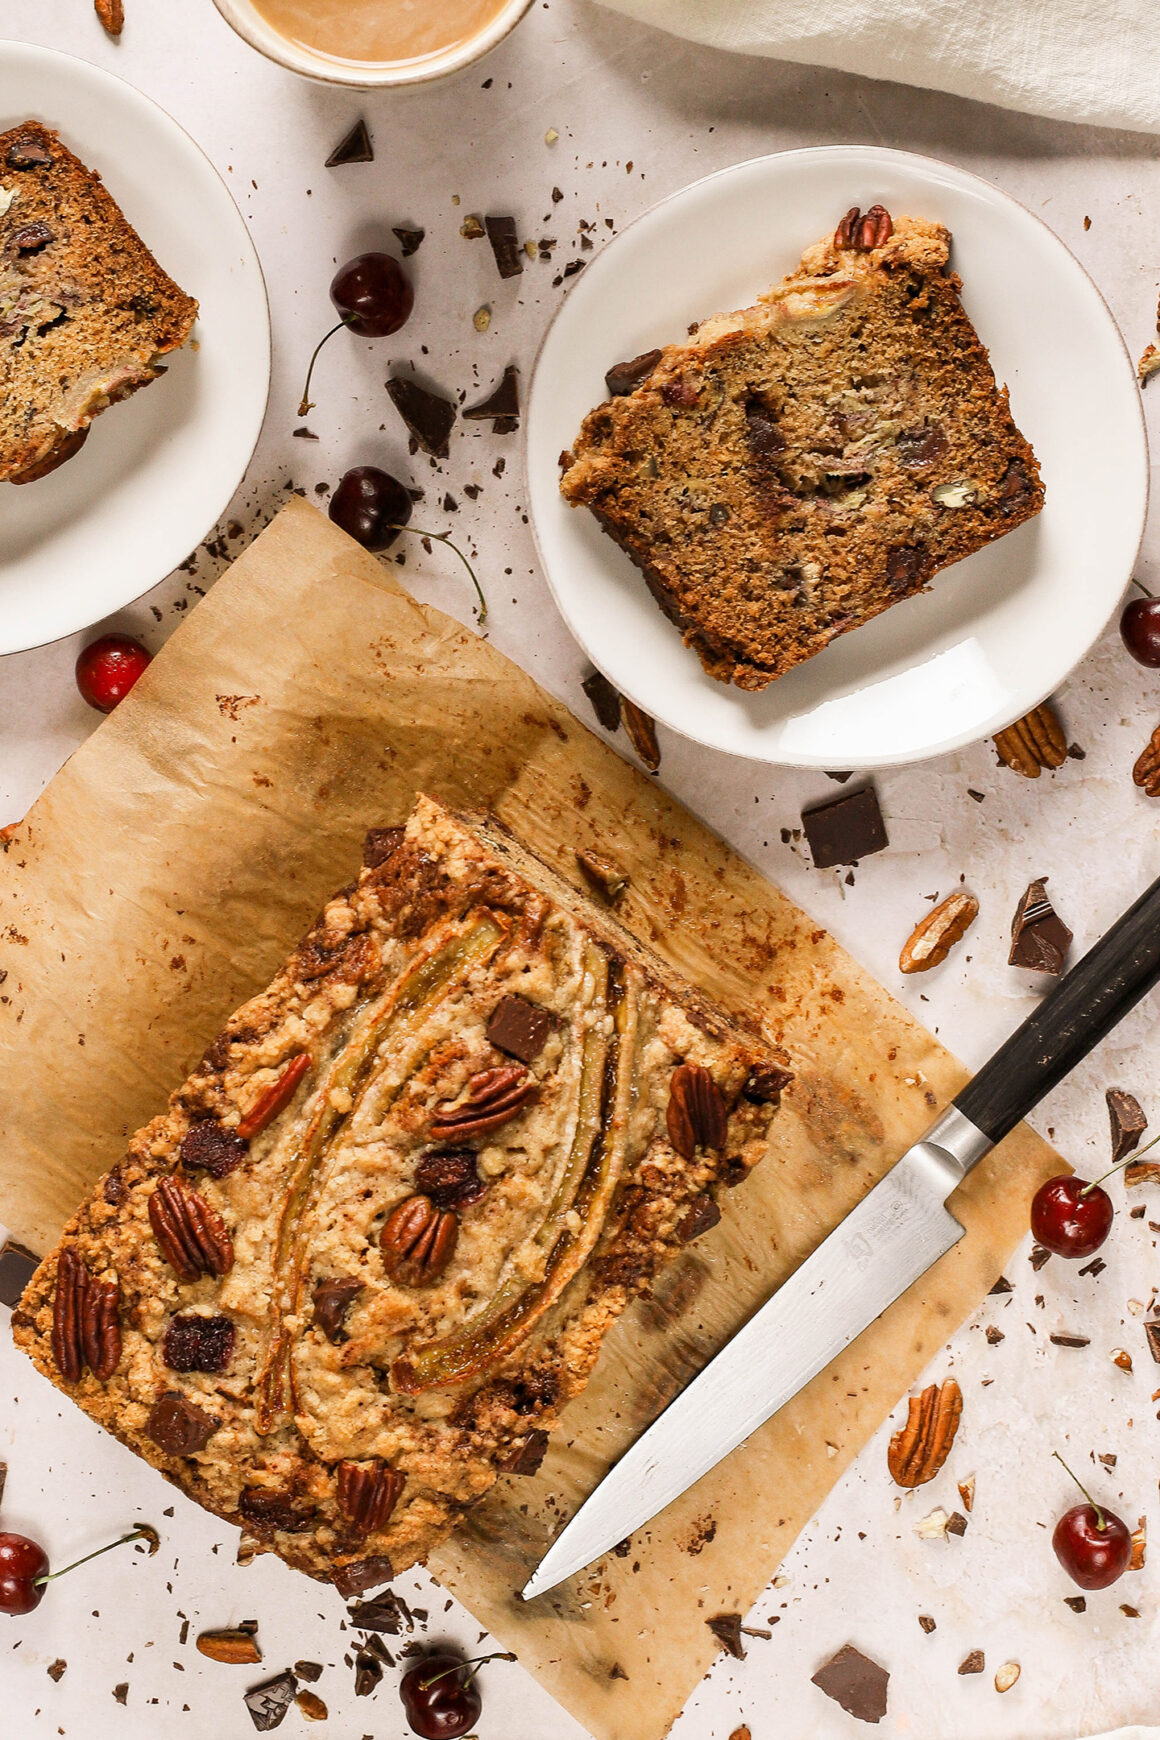 banana bread loaf with chocolate, cherries and pecans